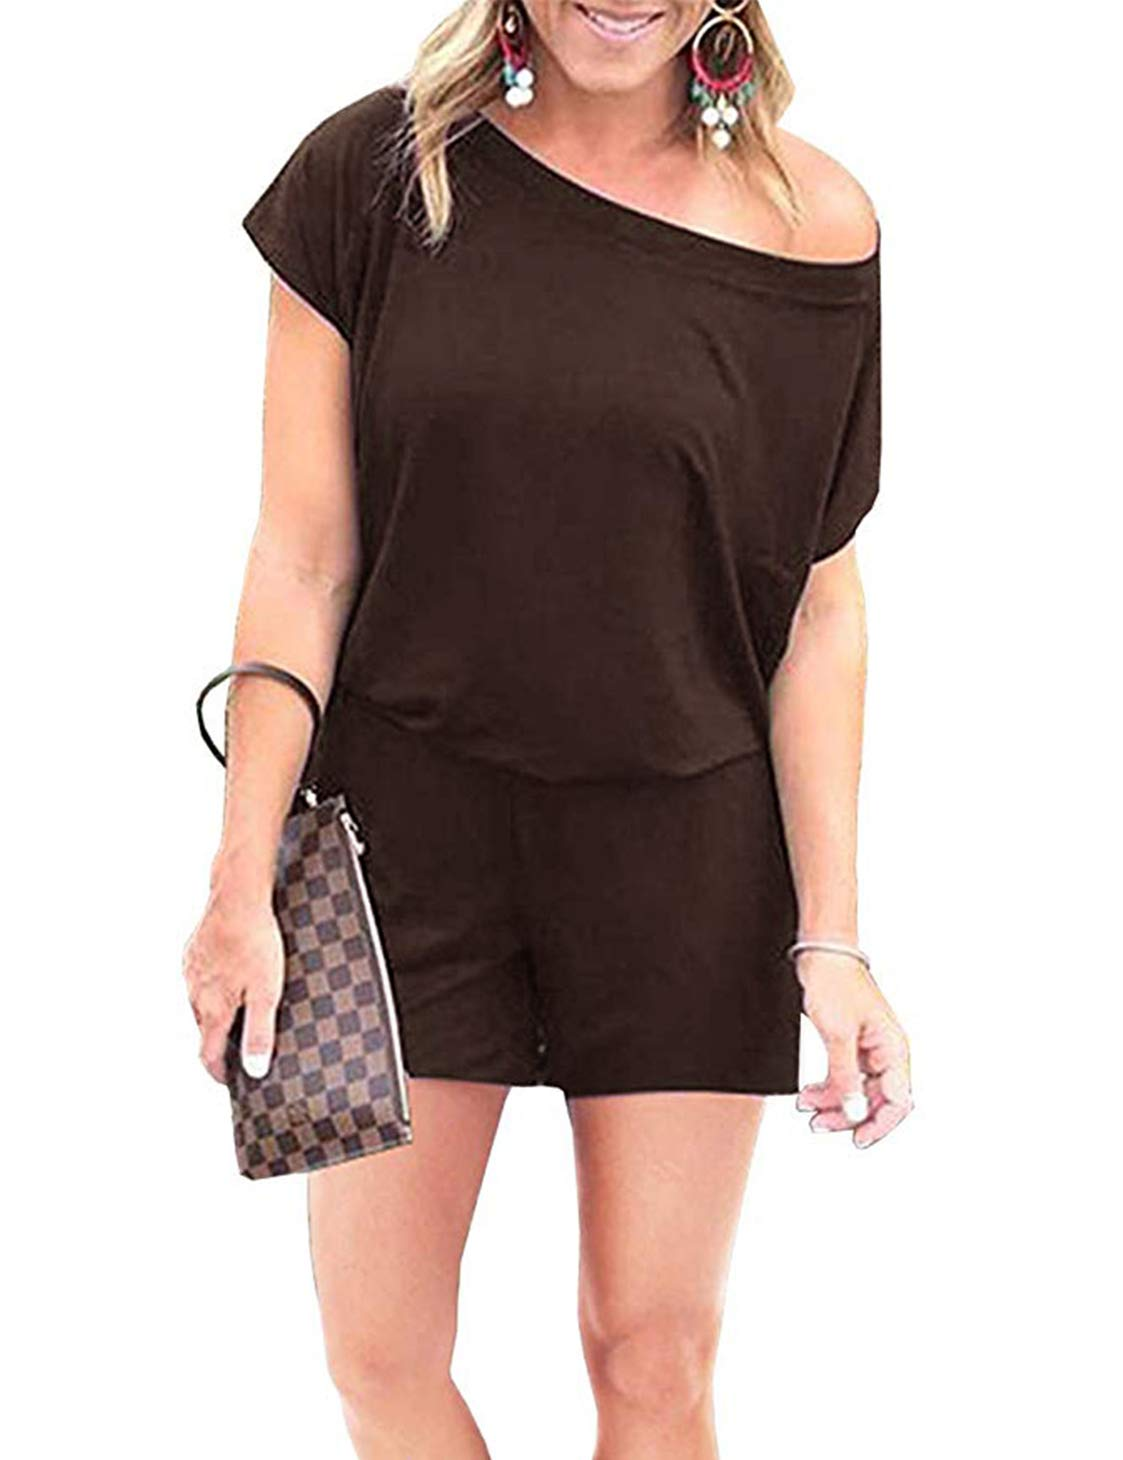 Women's Casual Off Shoulder Romper Short Sleeves Jumpsuit Elastic Waist Playsuit with Pockets